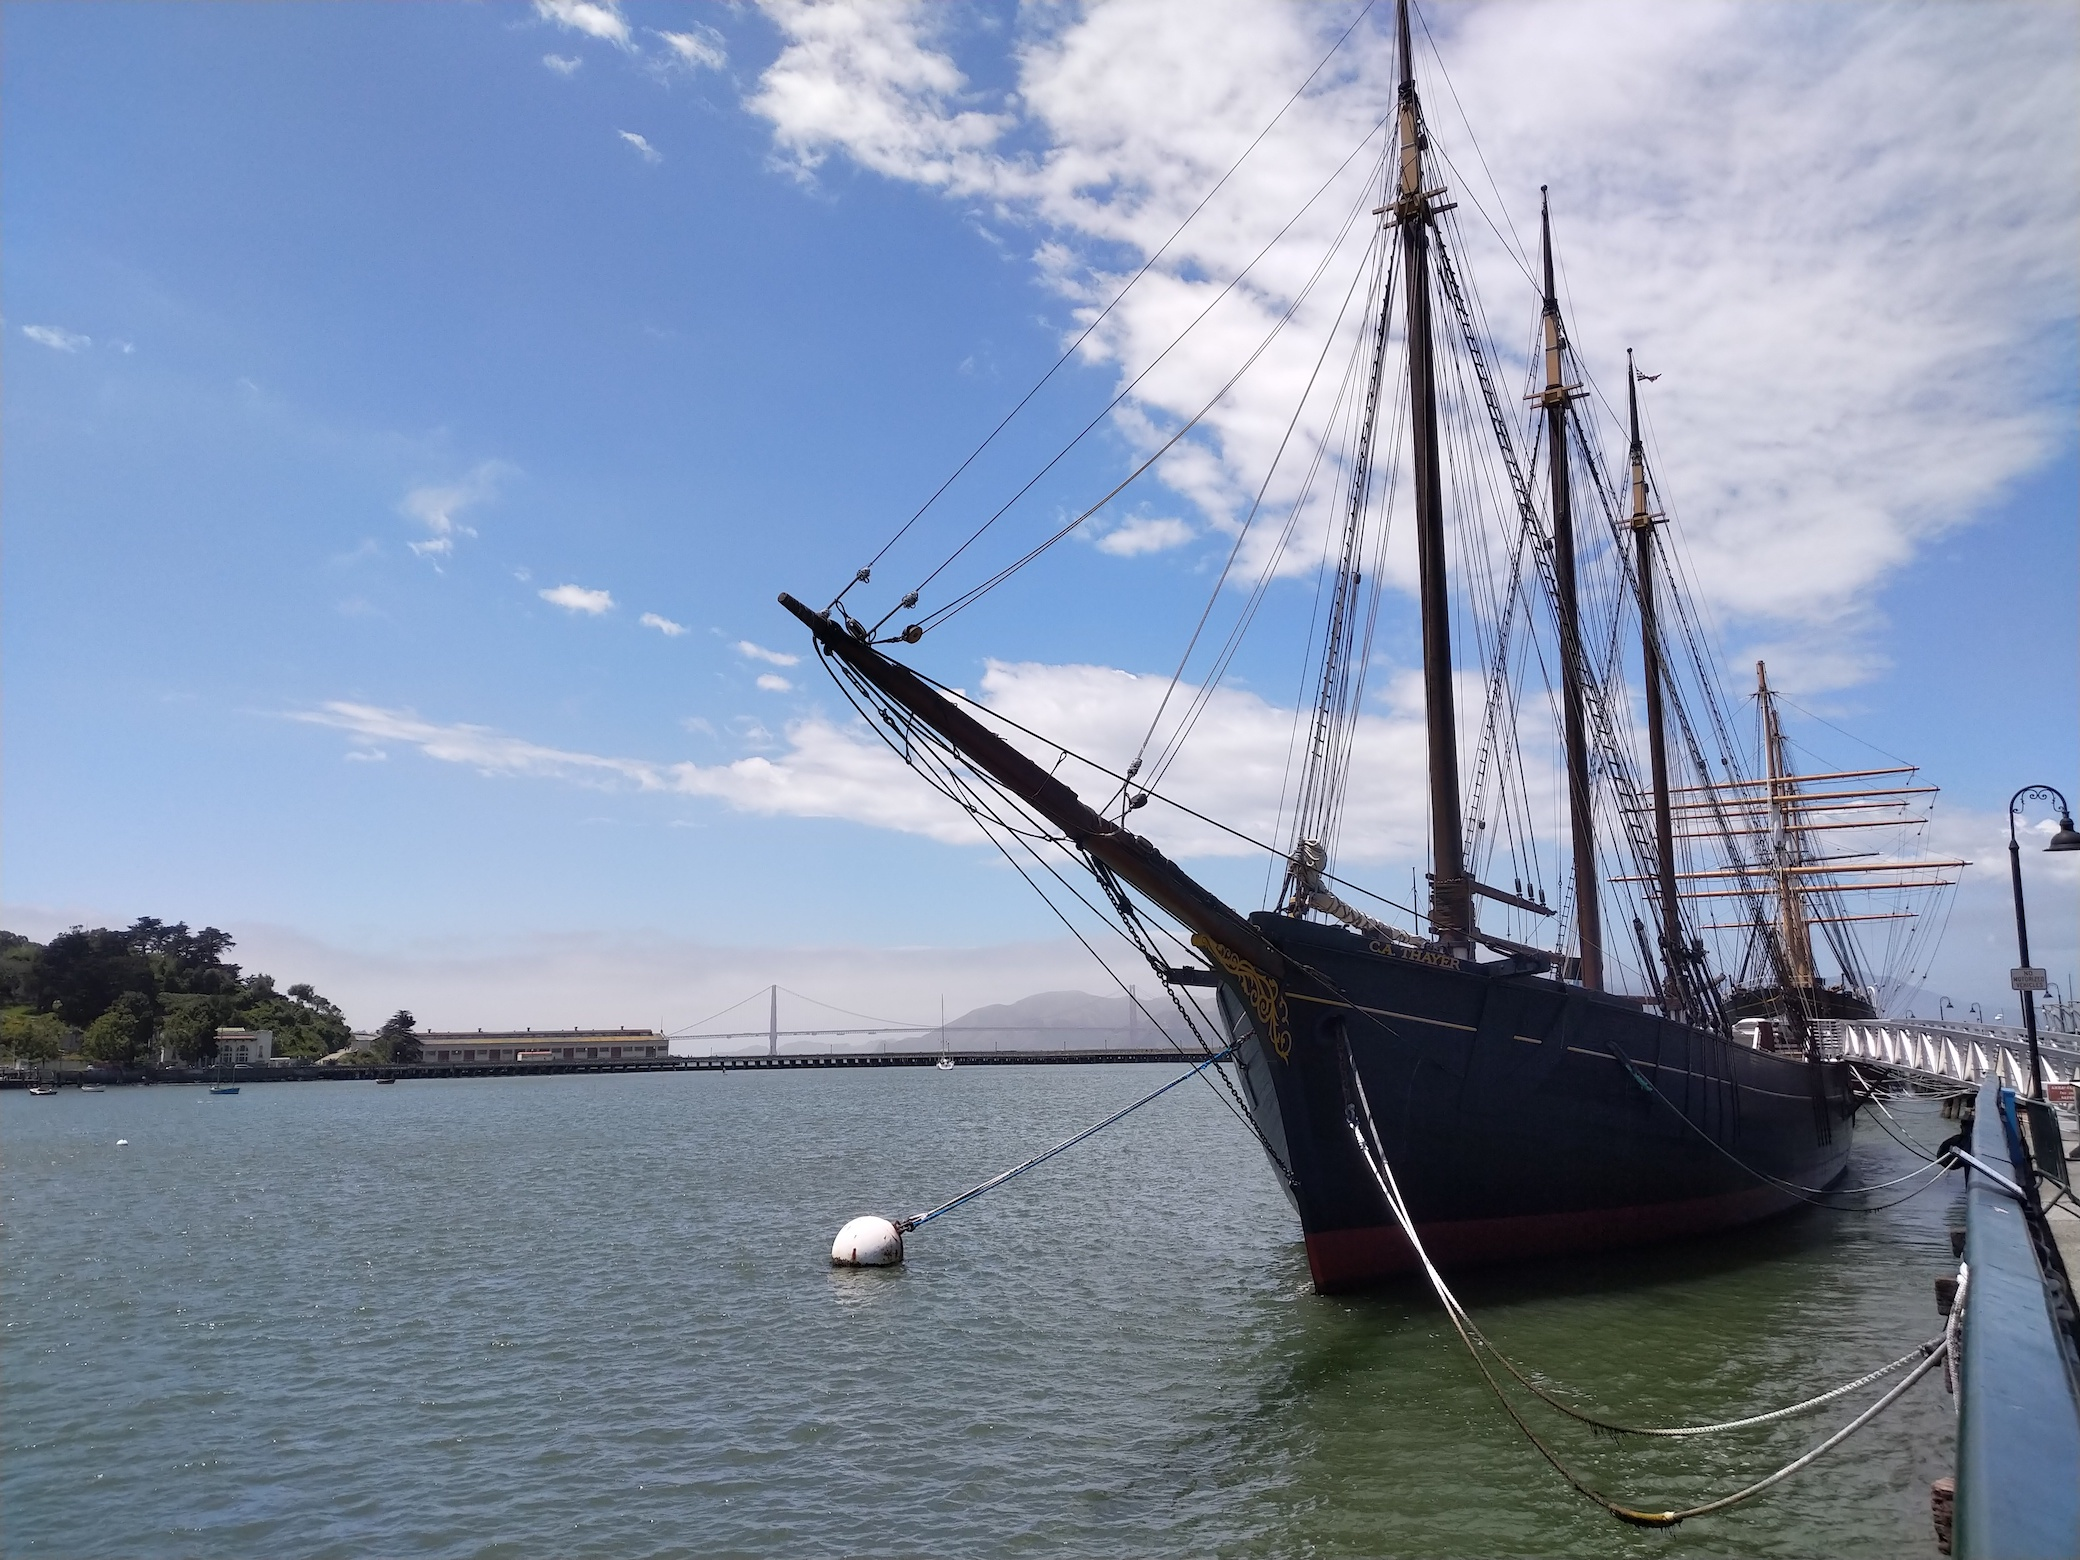 Found a tall ship